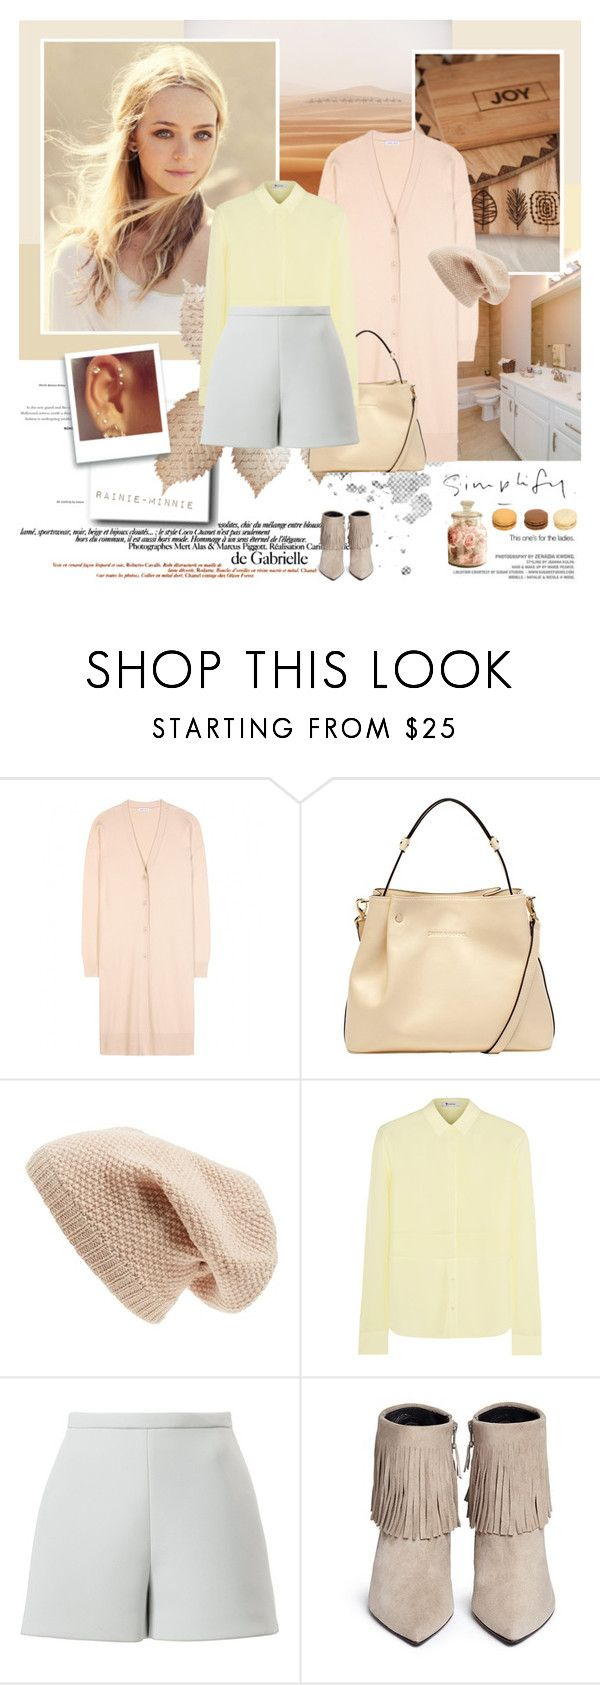 """""""The wind is blowing,I'm going where the wind blows.."""" by rainie-minnie ❤ liked on Polyvore featuring Tomas Maier, Lipsy, Sole Society, T By Alexander Wang, Delpozo and Stuart Weitzman"""